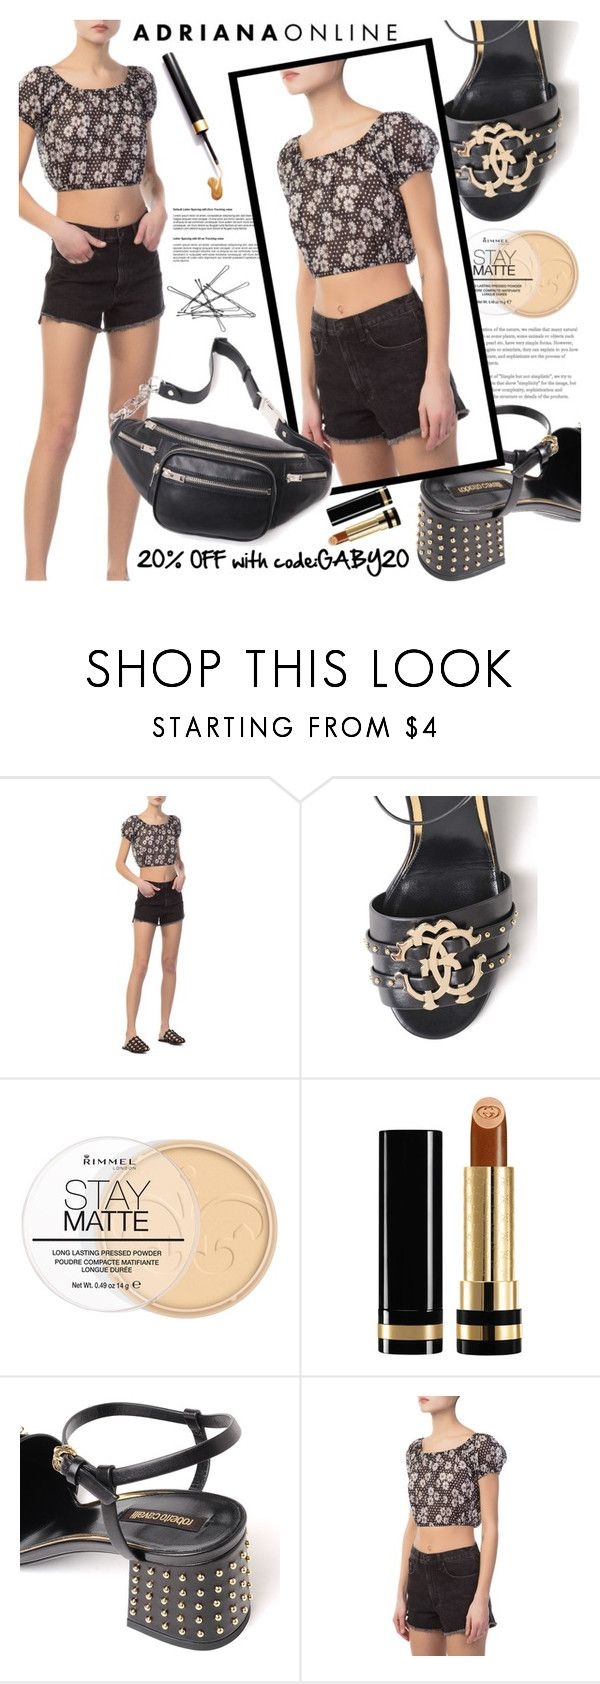 """ADRIANA ONLINE: Waiting For Summer"" by gaby-mil ❤ liked on Polyvore featuring Lisa Marie Fernandez, Roberto Cavalli, Rimmel, Gucci and Alexander Wang"